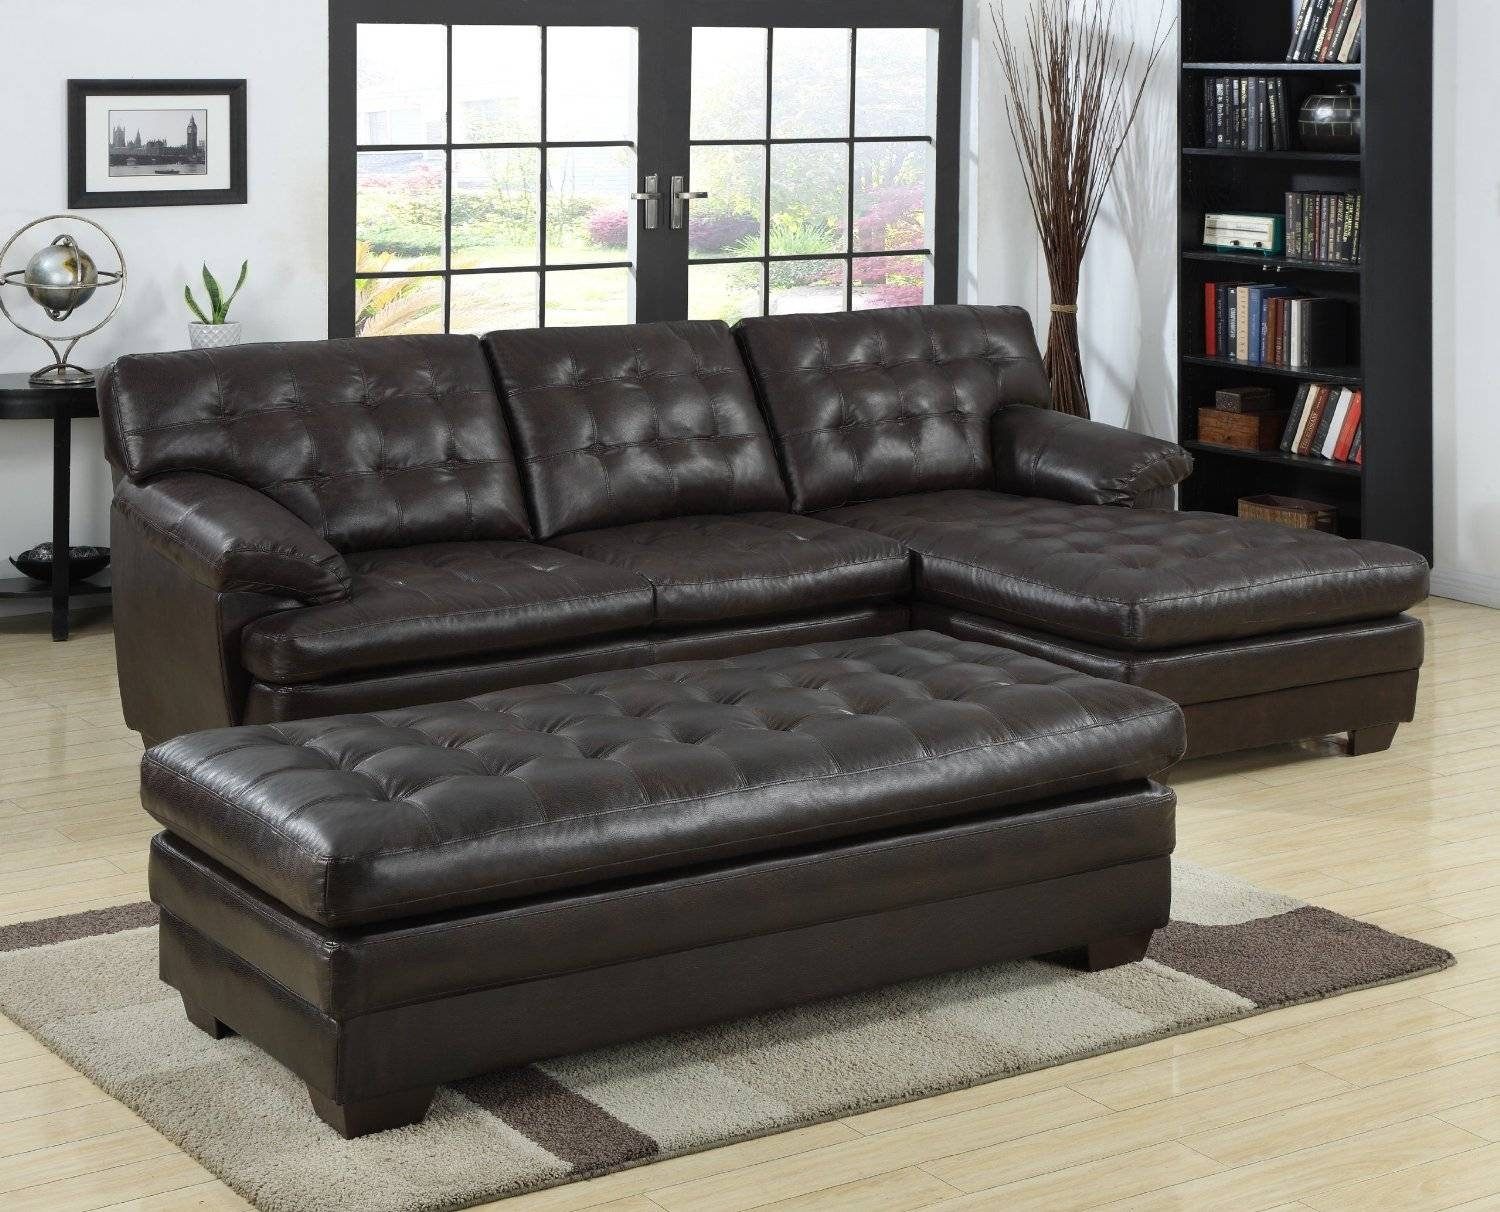 Leather Tufted Sofa. White Leather Tufted Sofa Bed. Cheap intended for Leather Bench Sofas (Image 17 of 30)